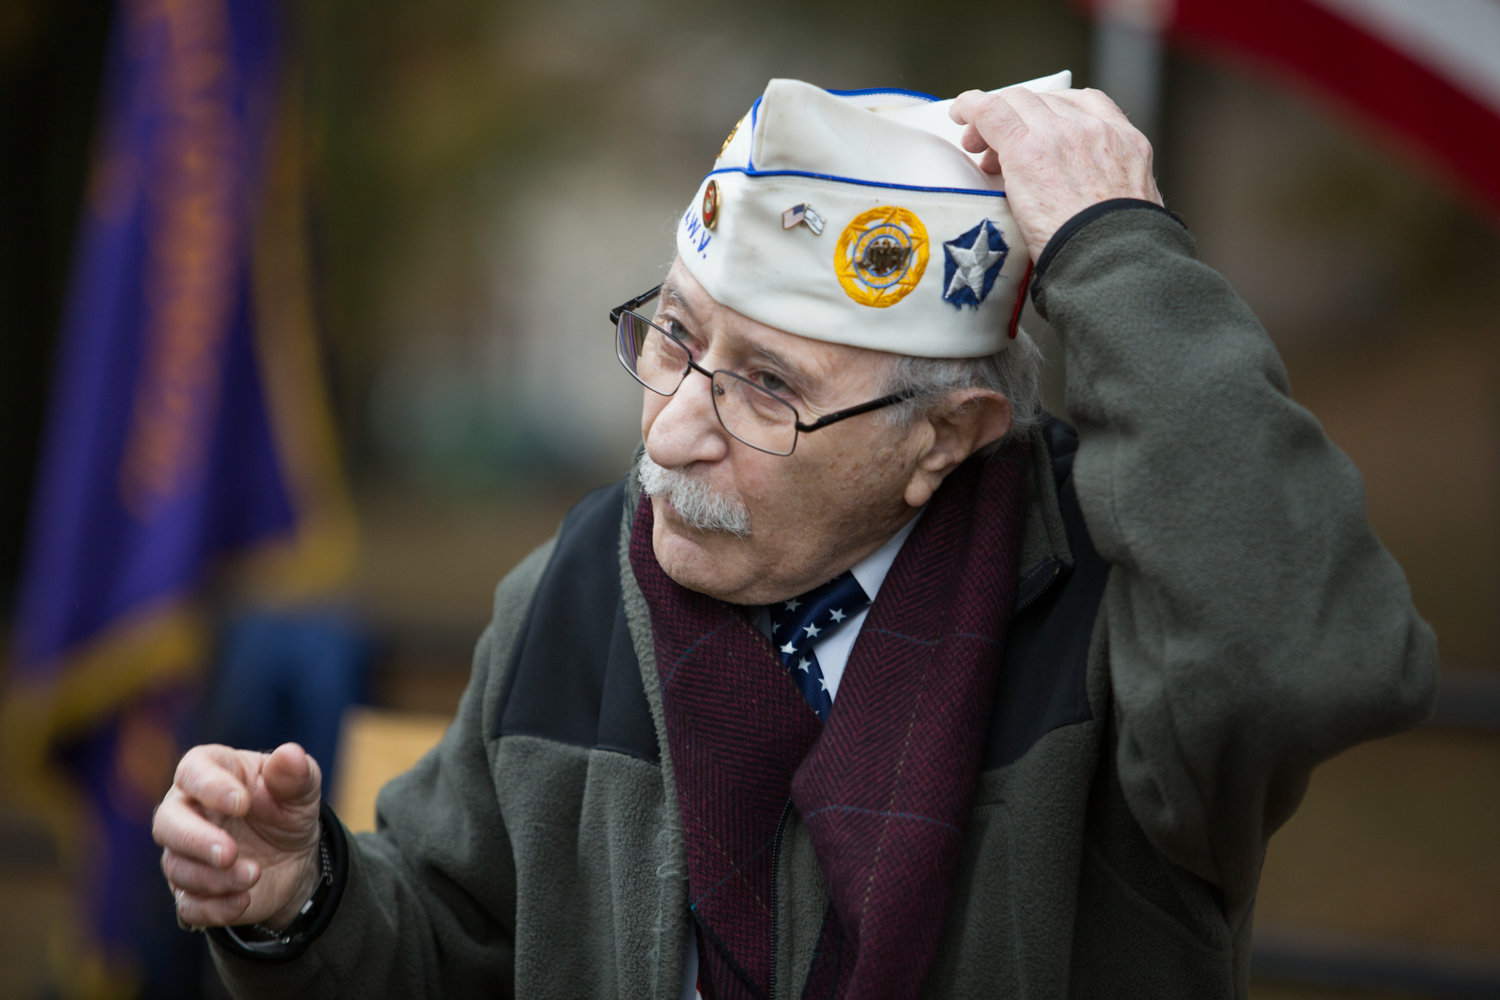 Herb Barret puts on his cap before opening the Veterans Day ceremony at Van Cortlandt Park's Memorial Grove in 2017. Barret first organized the ceremony in 2007 with his friend and fellow veteran Donald Tannen, who died in 2014.